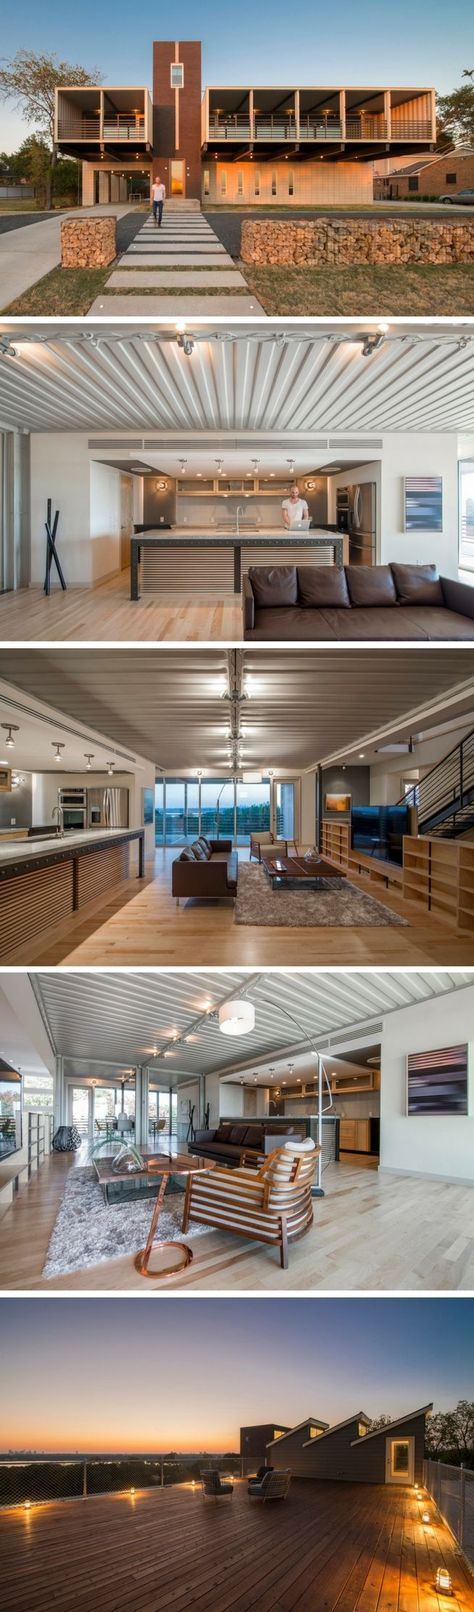 Pv14 Shipping Container House Container House Design Container